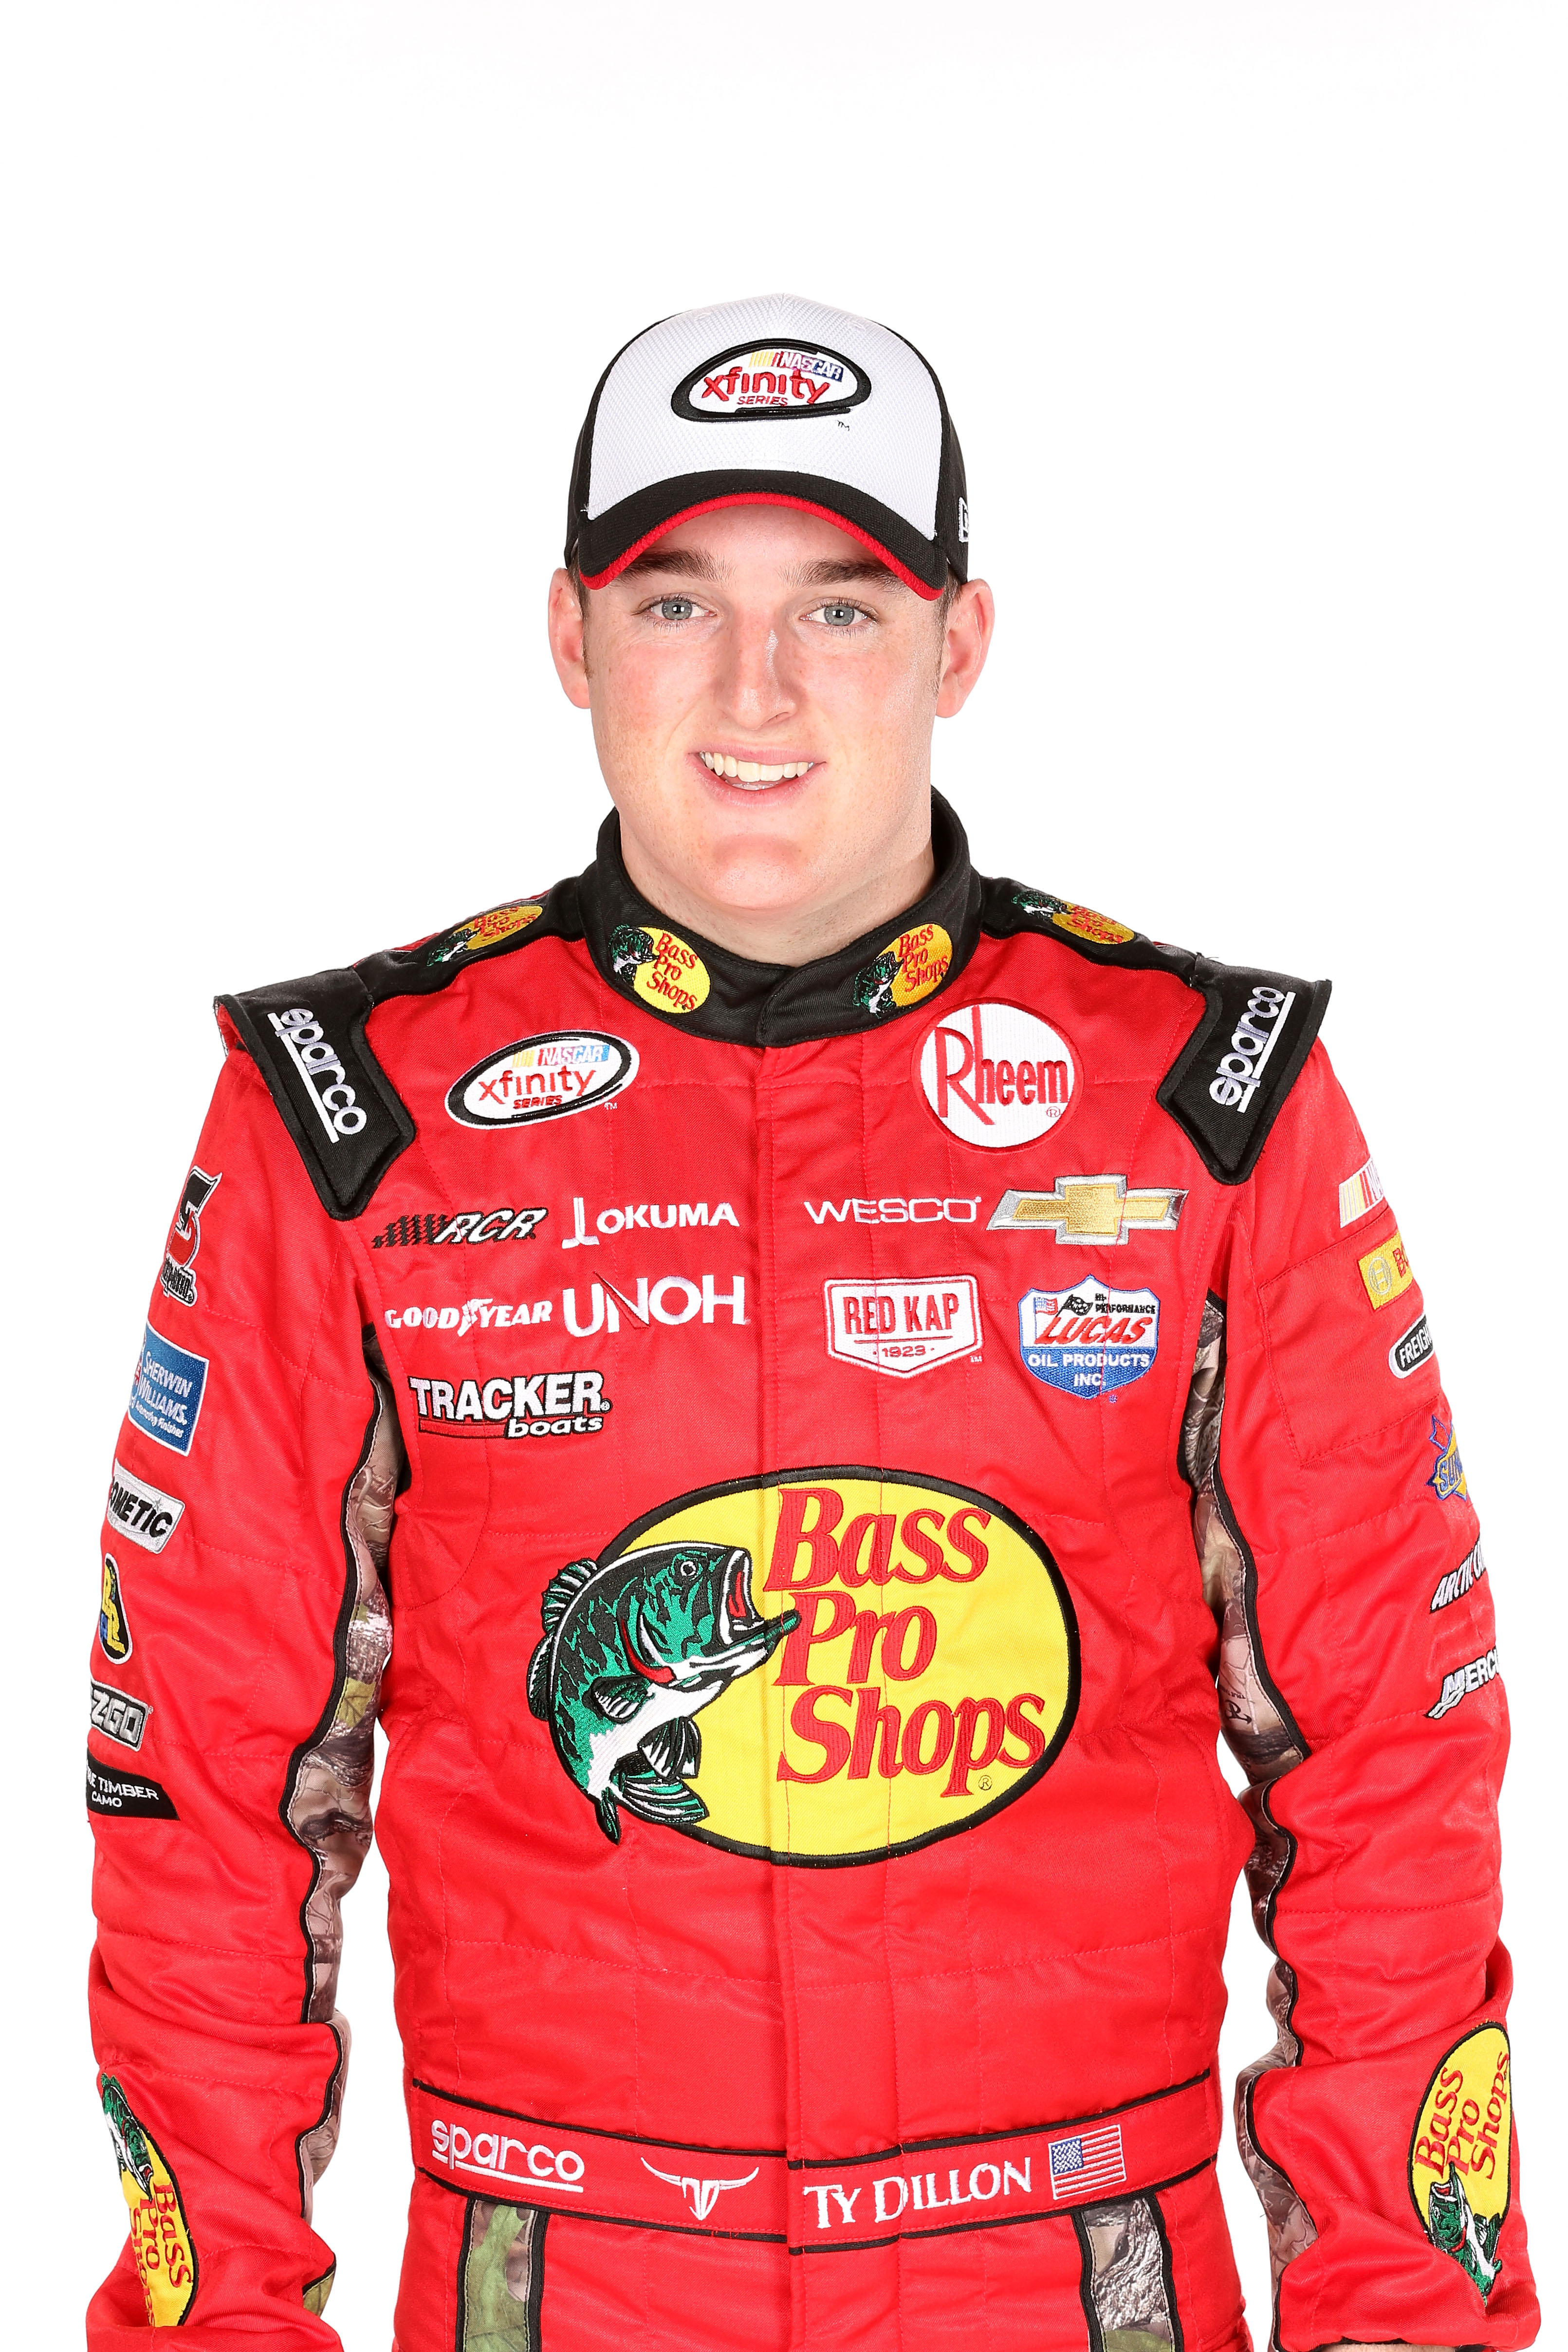 Ty Dillon Sprint Cup Series Results - 2016 Race Results by season ...